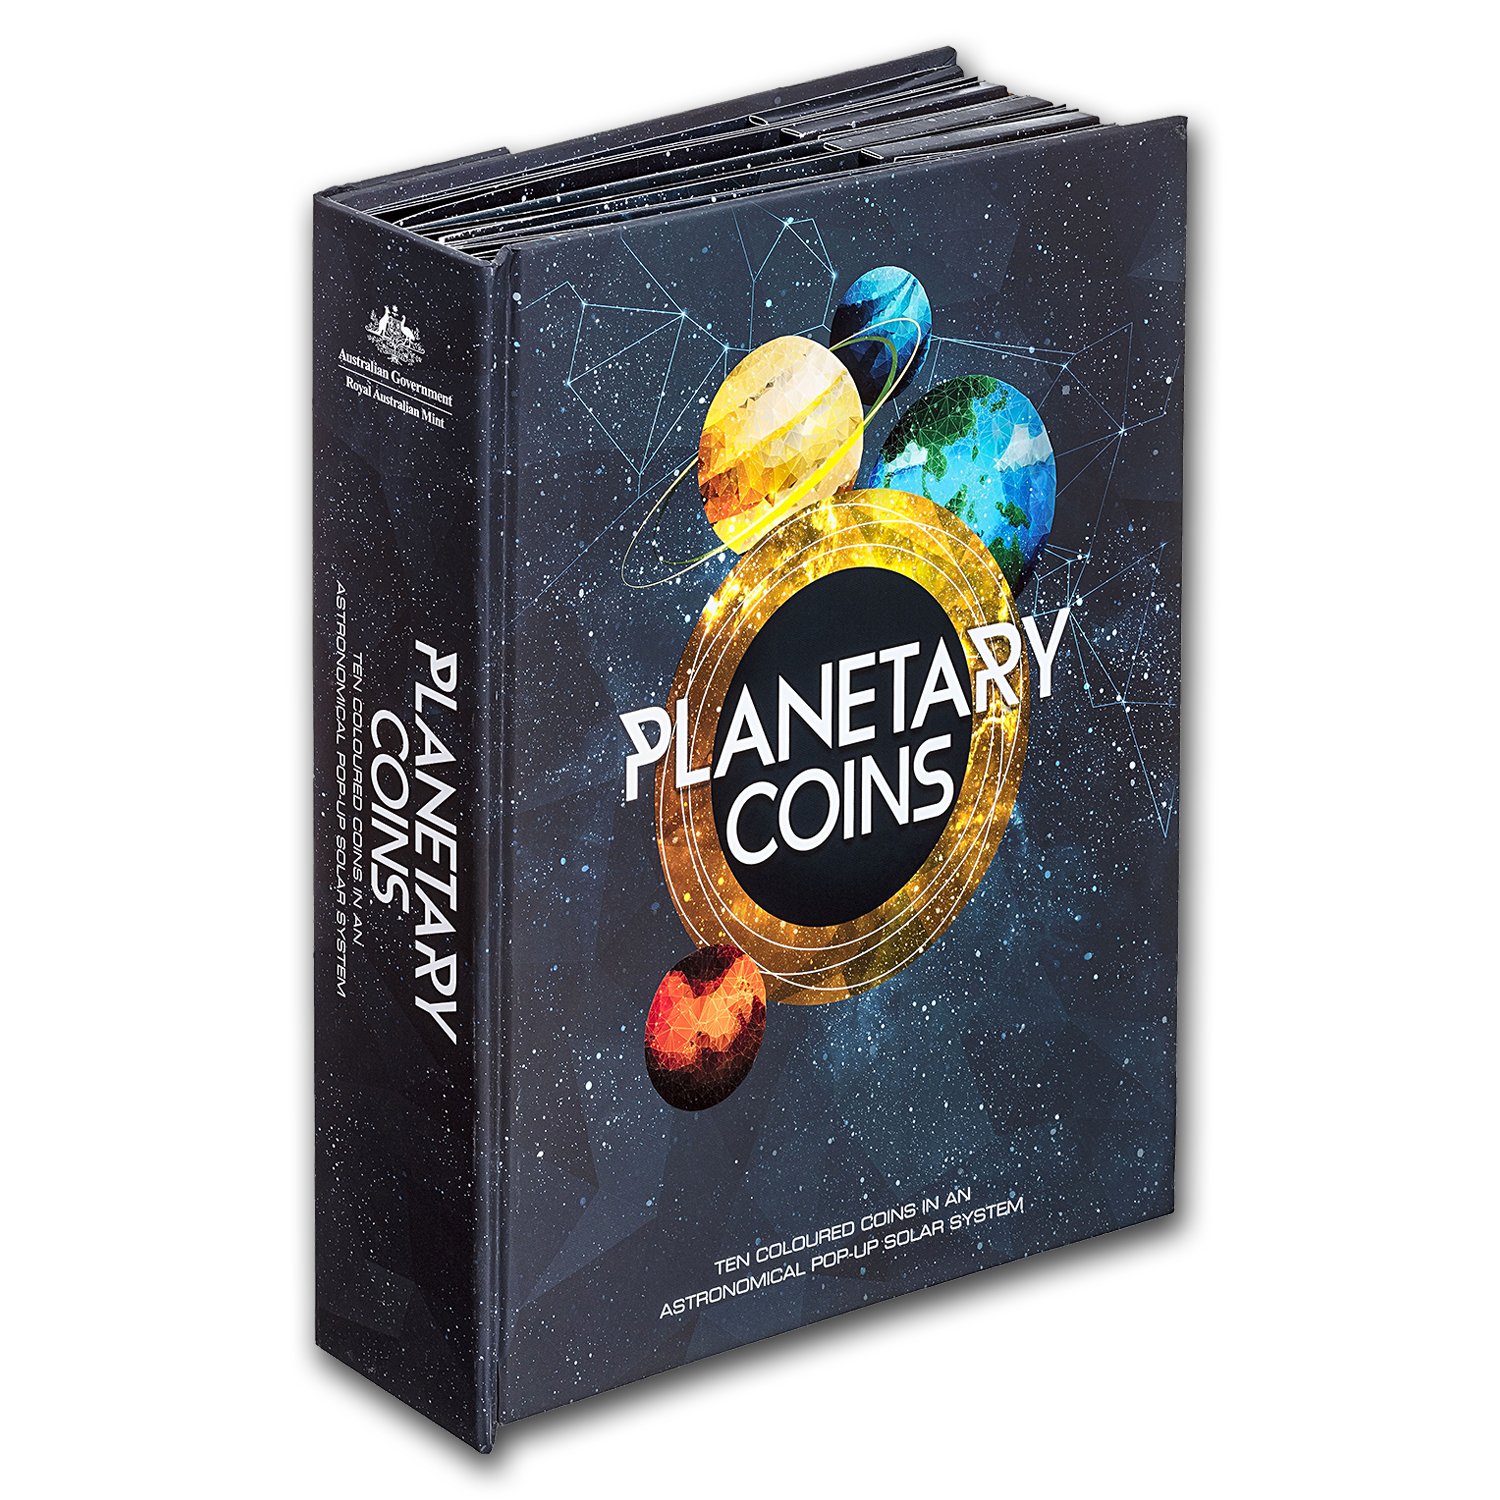 2017 10-Coin Royal Australian Mint Planetary Pop-Up Book